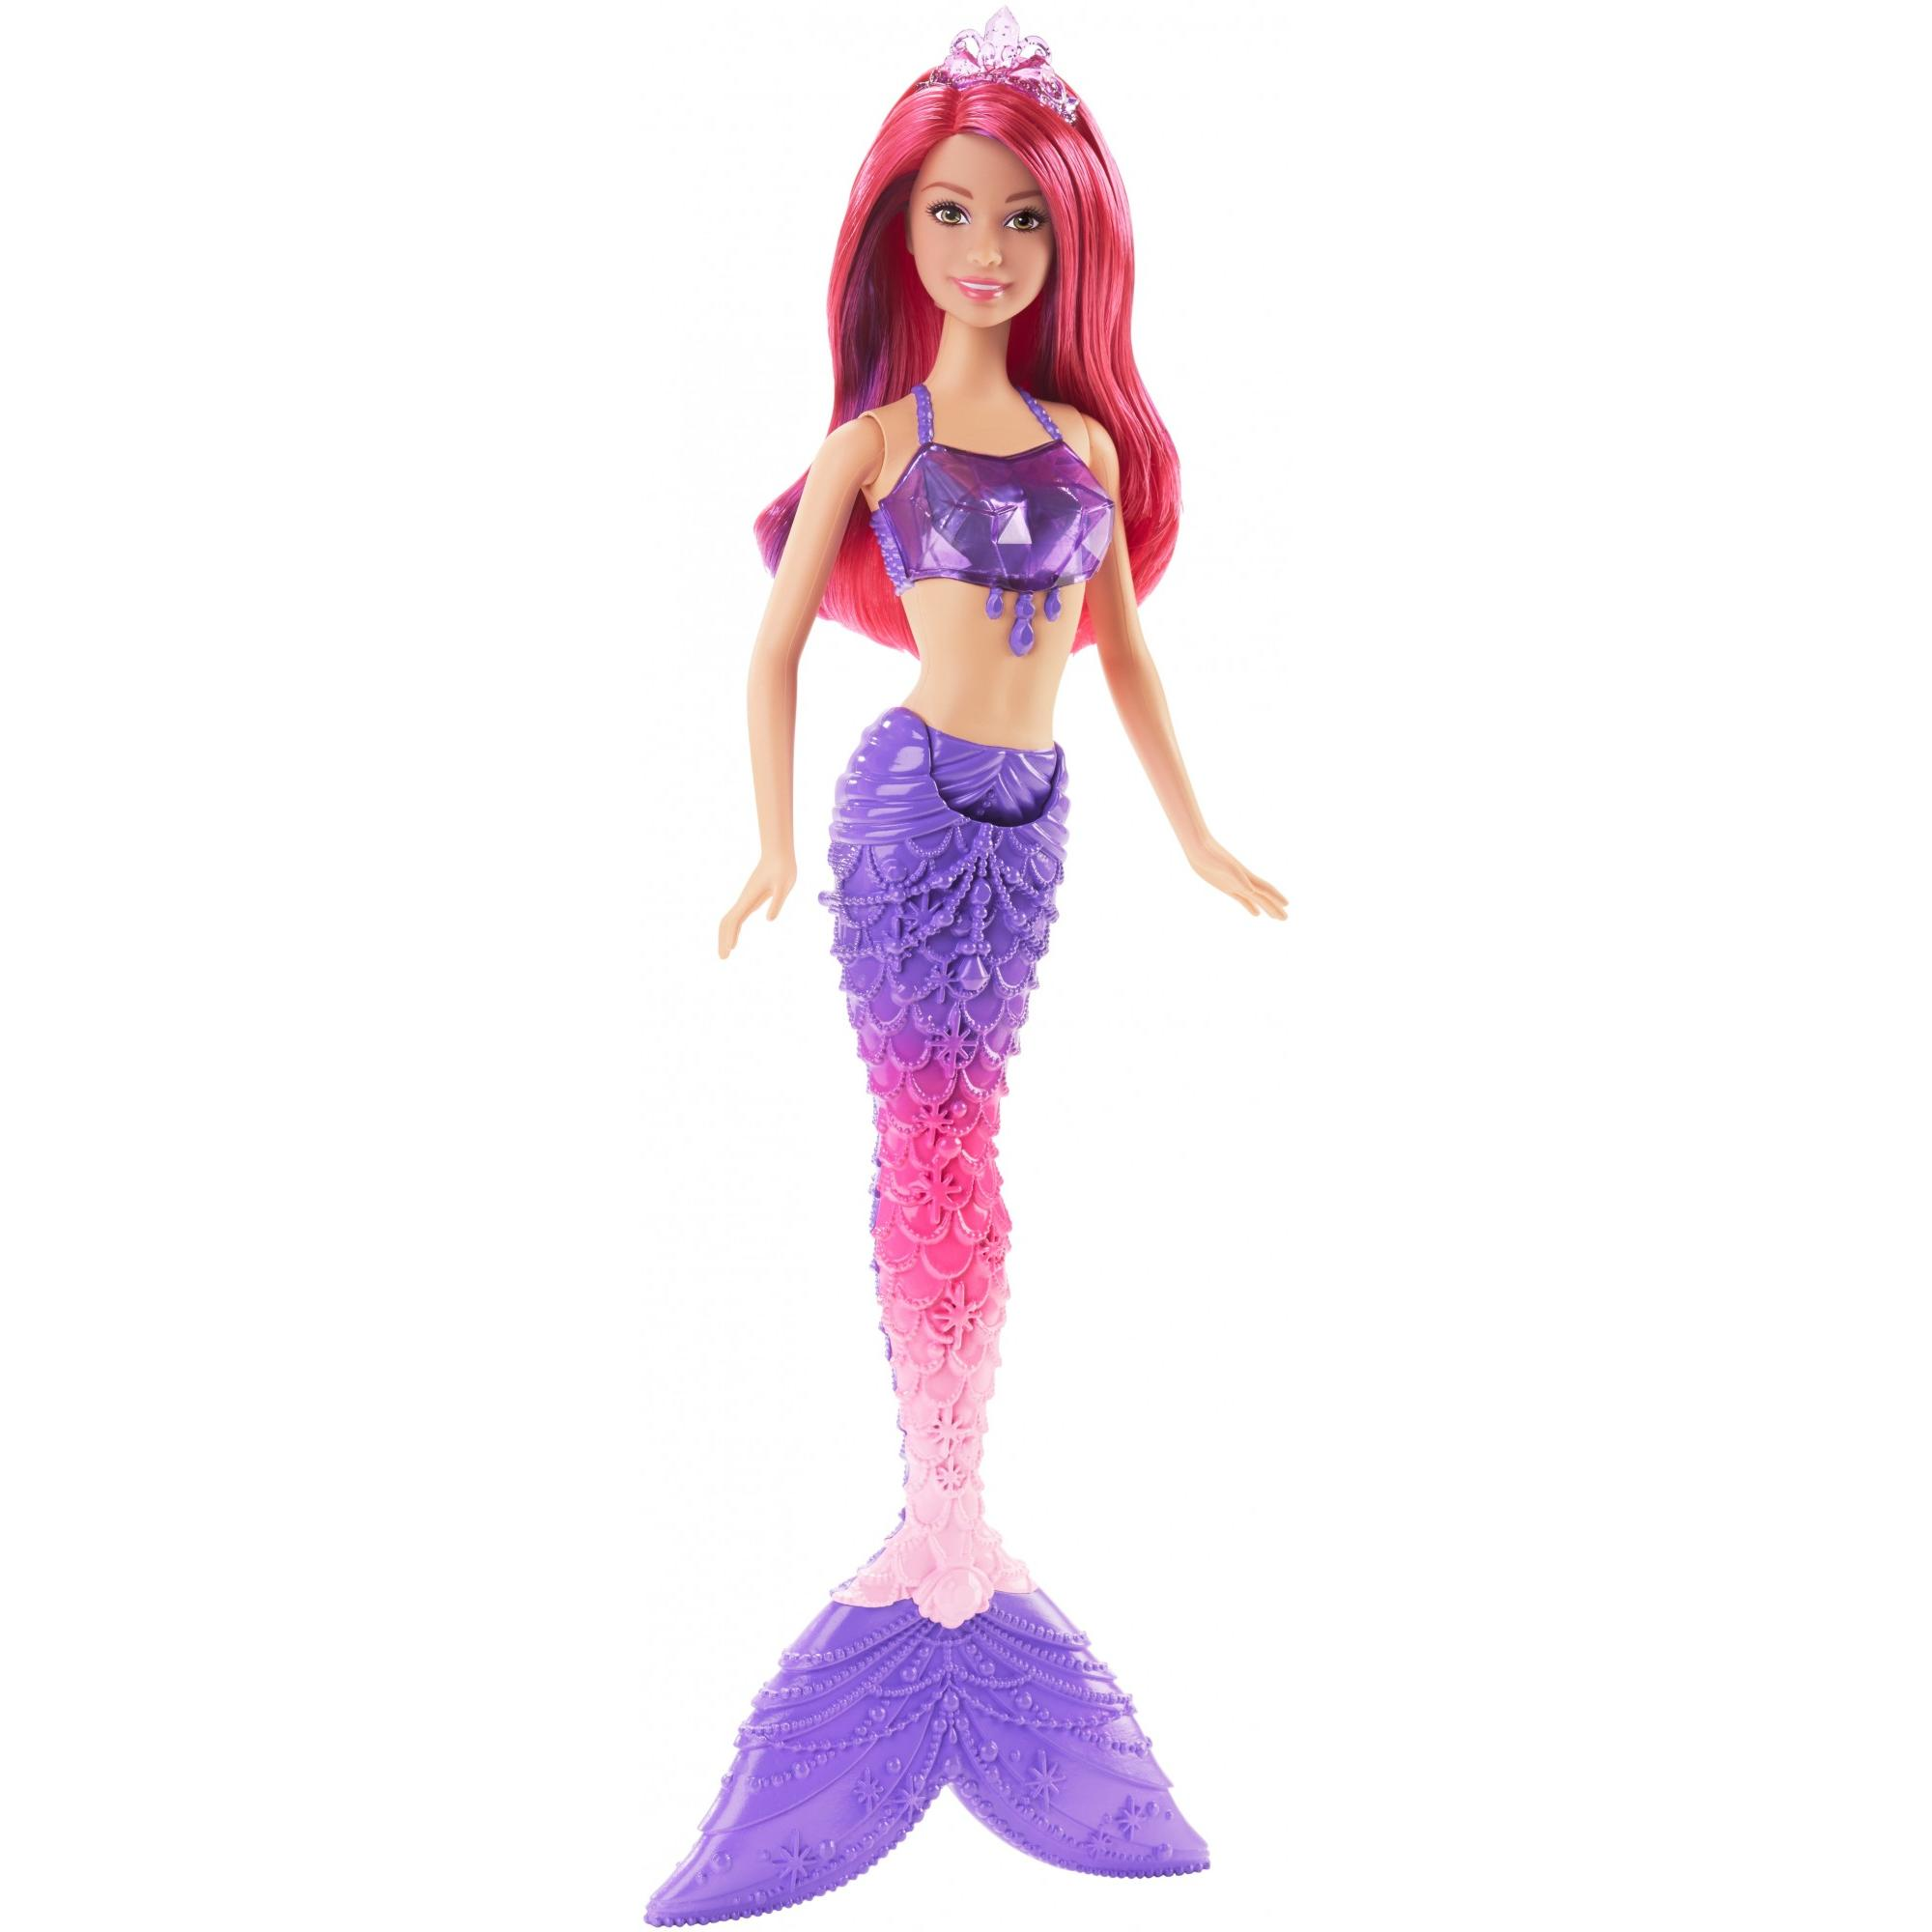 Barbie Fairytale Mermaid -gem by Mattel